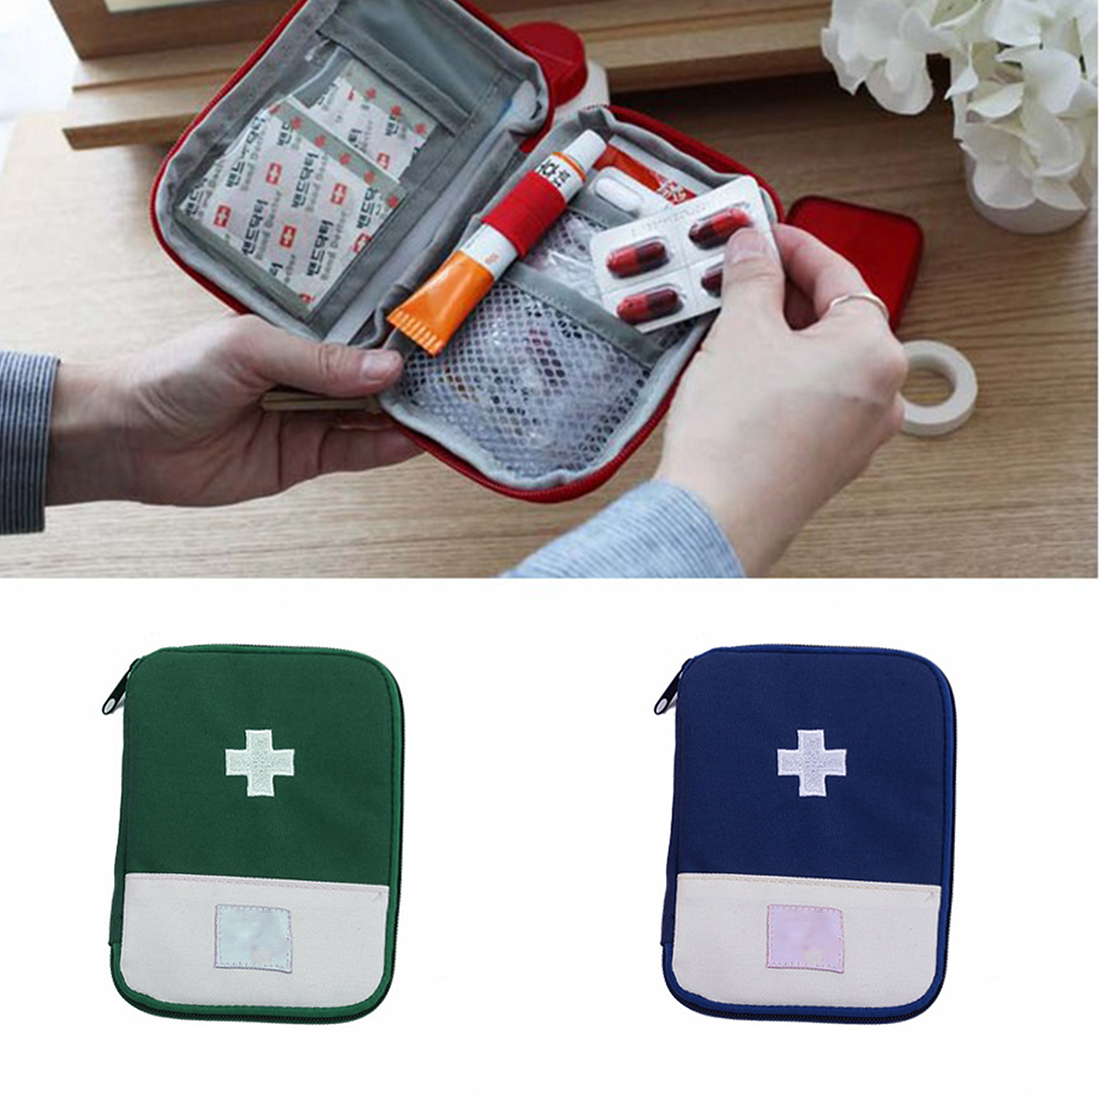 New EDC Outdoor First Aid Kit Bag Portable Travel Medicine Package Emergency Kit Bags Small Medicine Divider Storage OrganizerNew EDC Outdoor First Aid Kit Bag Portable Travel Medicine Package Emergency Kit Bags Small Medicine Divider Storage Organizer